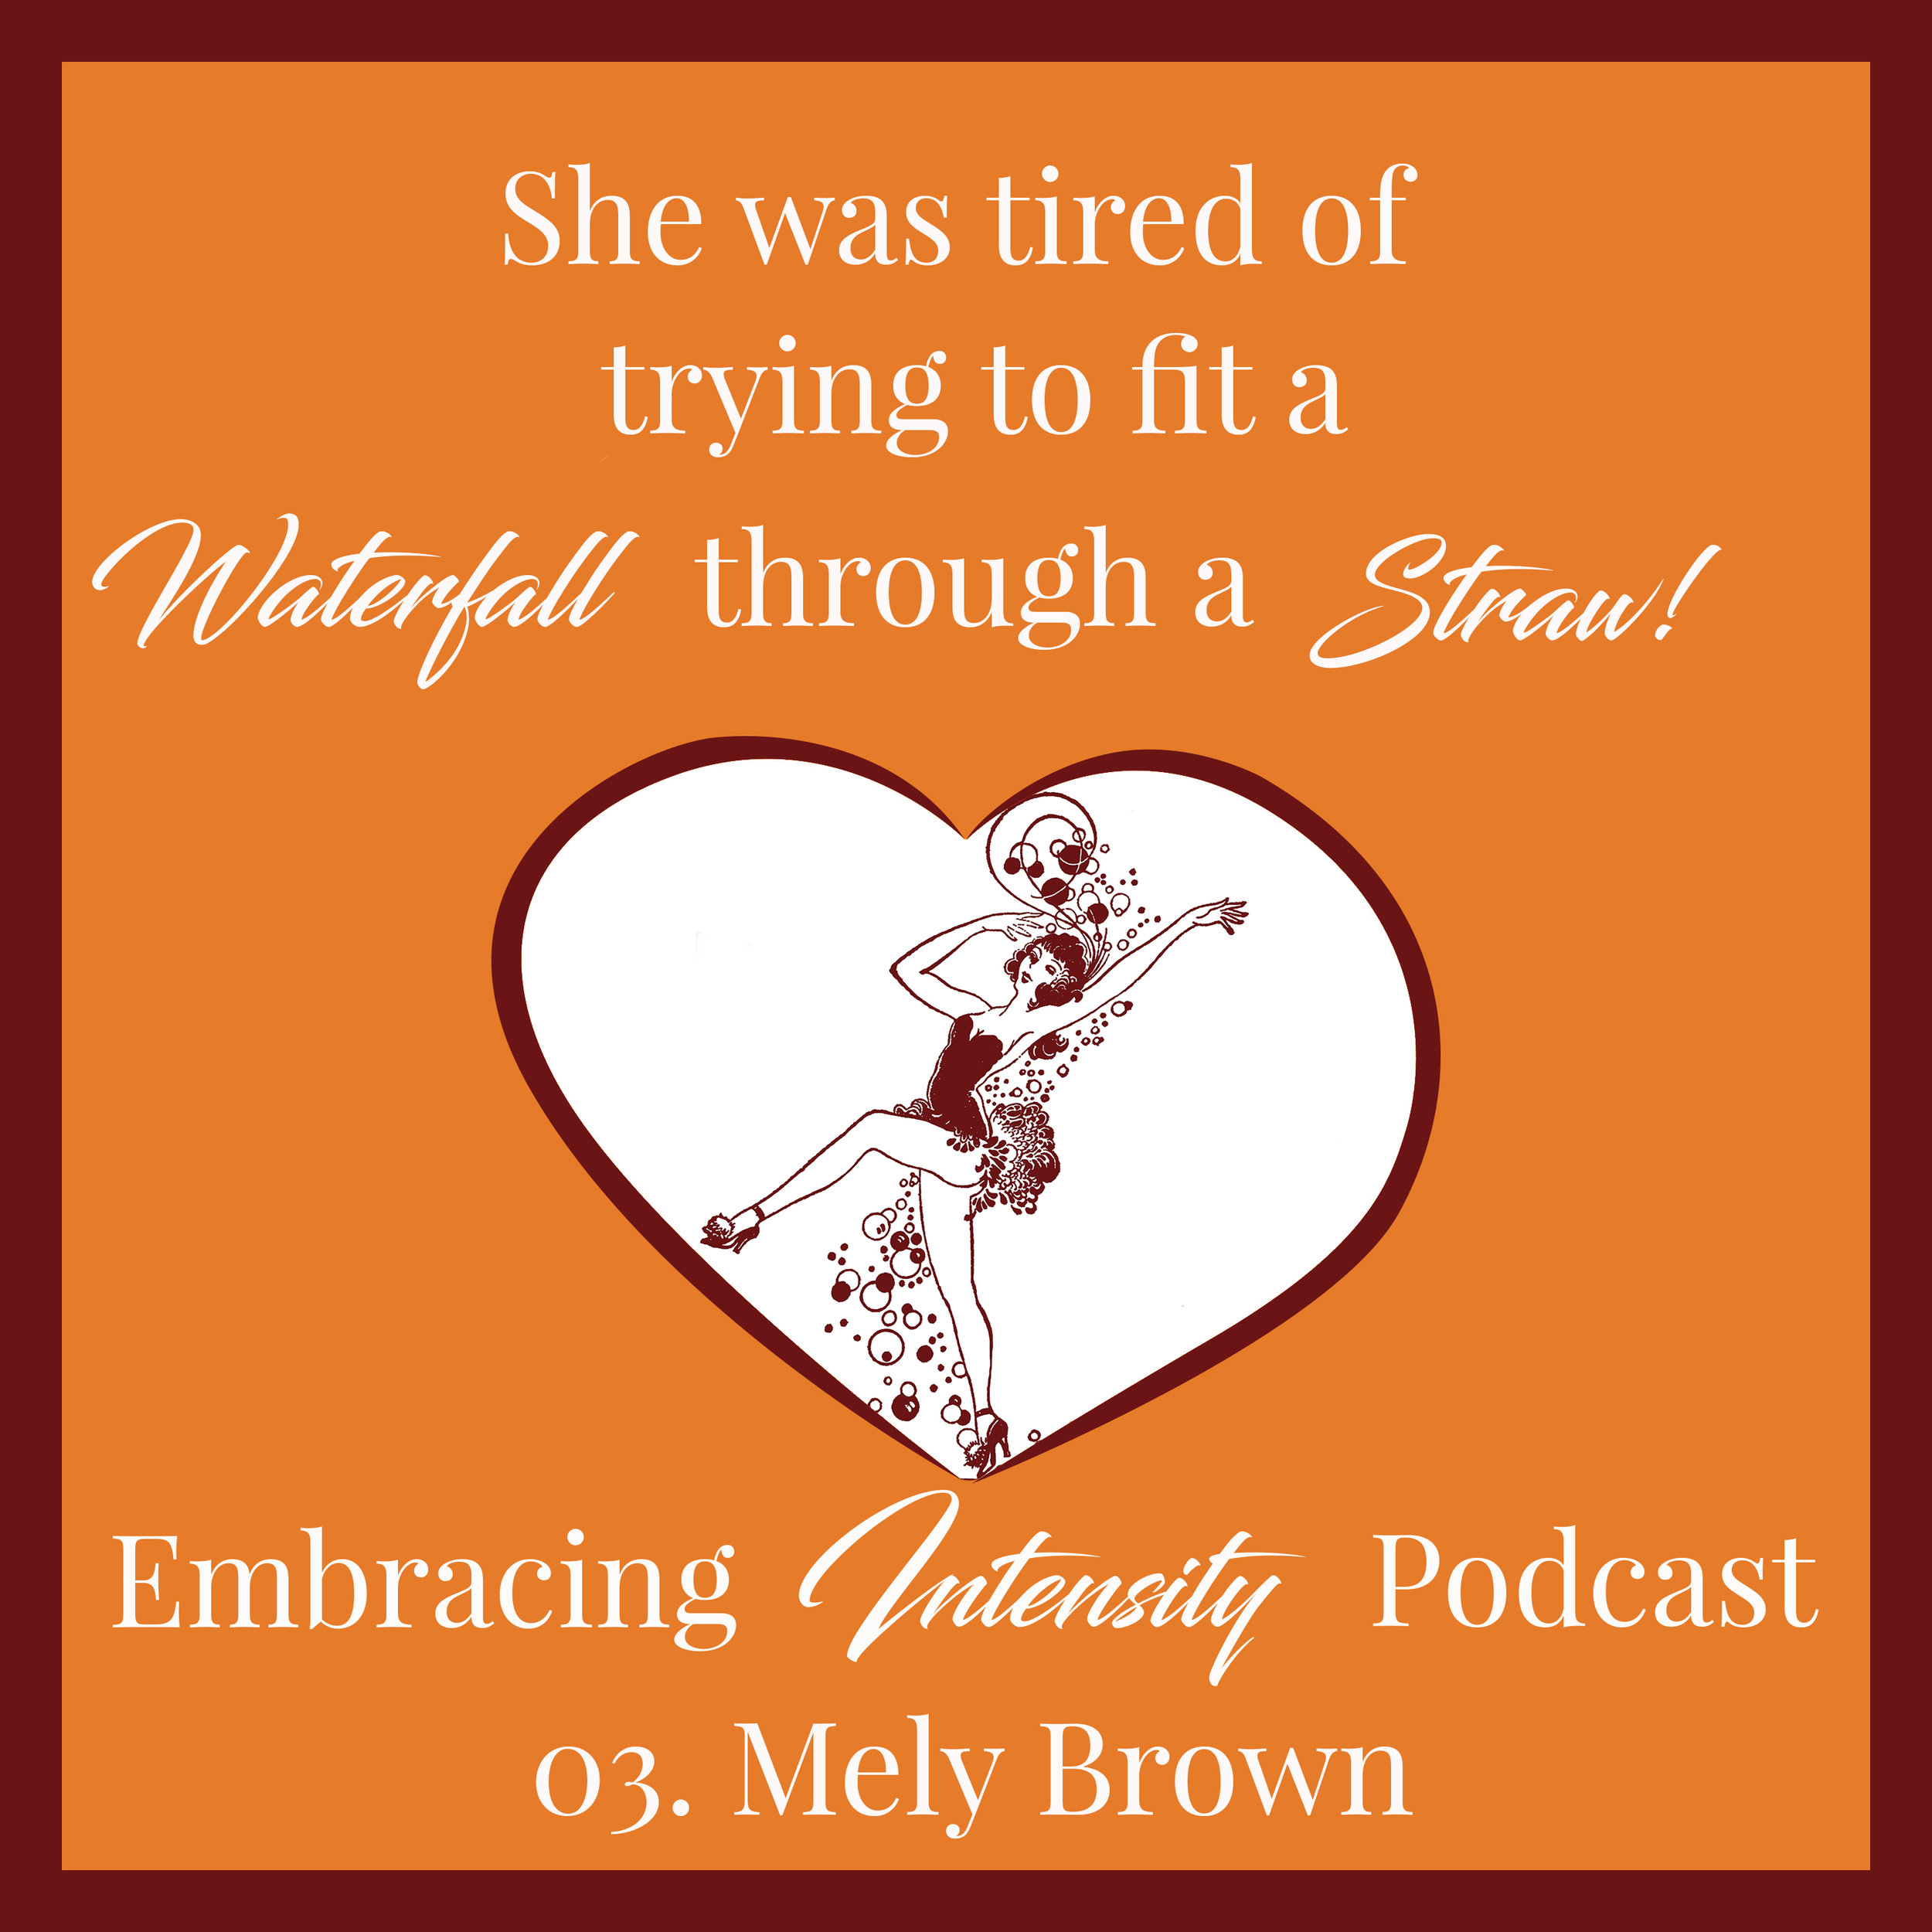 She was tired of trying to fit a waterfall through a straw. Embracing Intensity Podcast ep. 03: Self-Care for the Highly Sensitive Woman with Mely Brown